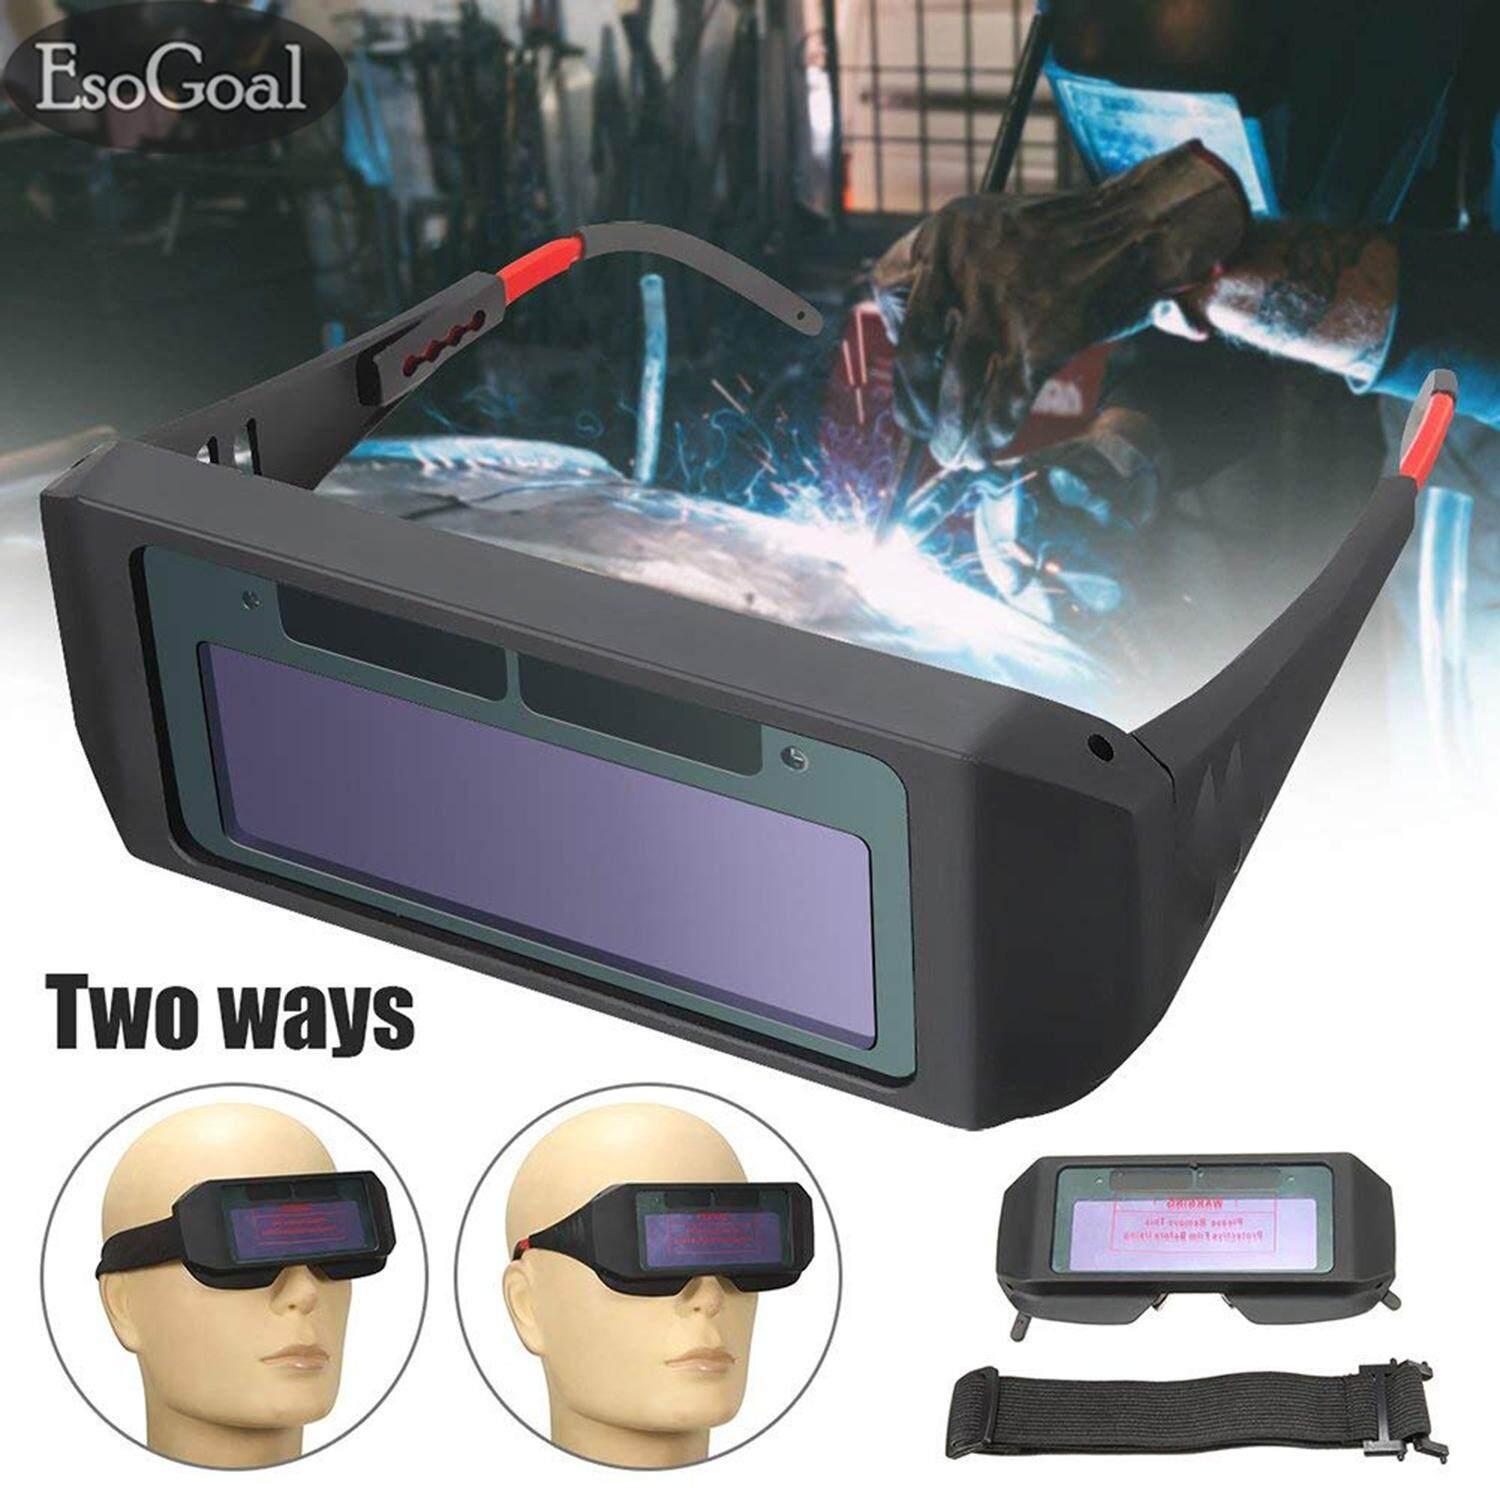 EsoGoal Las Kacamata Welding Tools Solar Welding Mask Auto Darkening Welding Helmet Goggles for Eye Protection